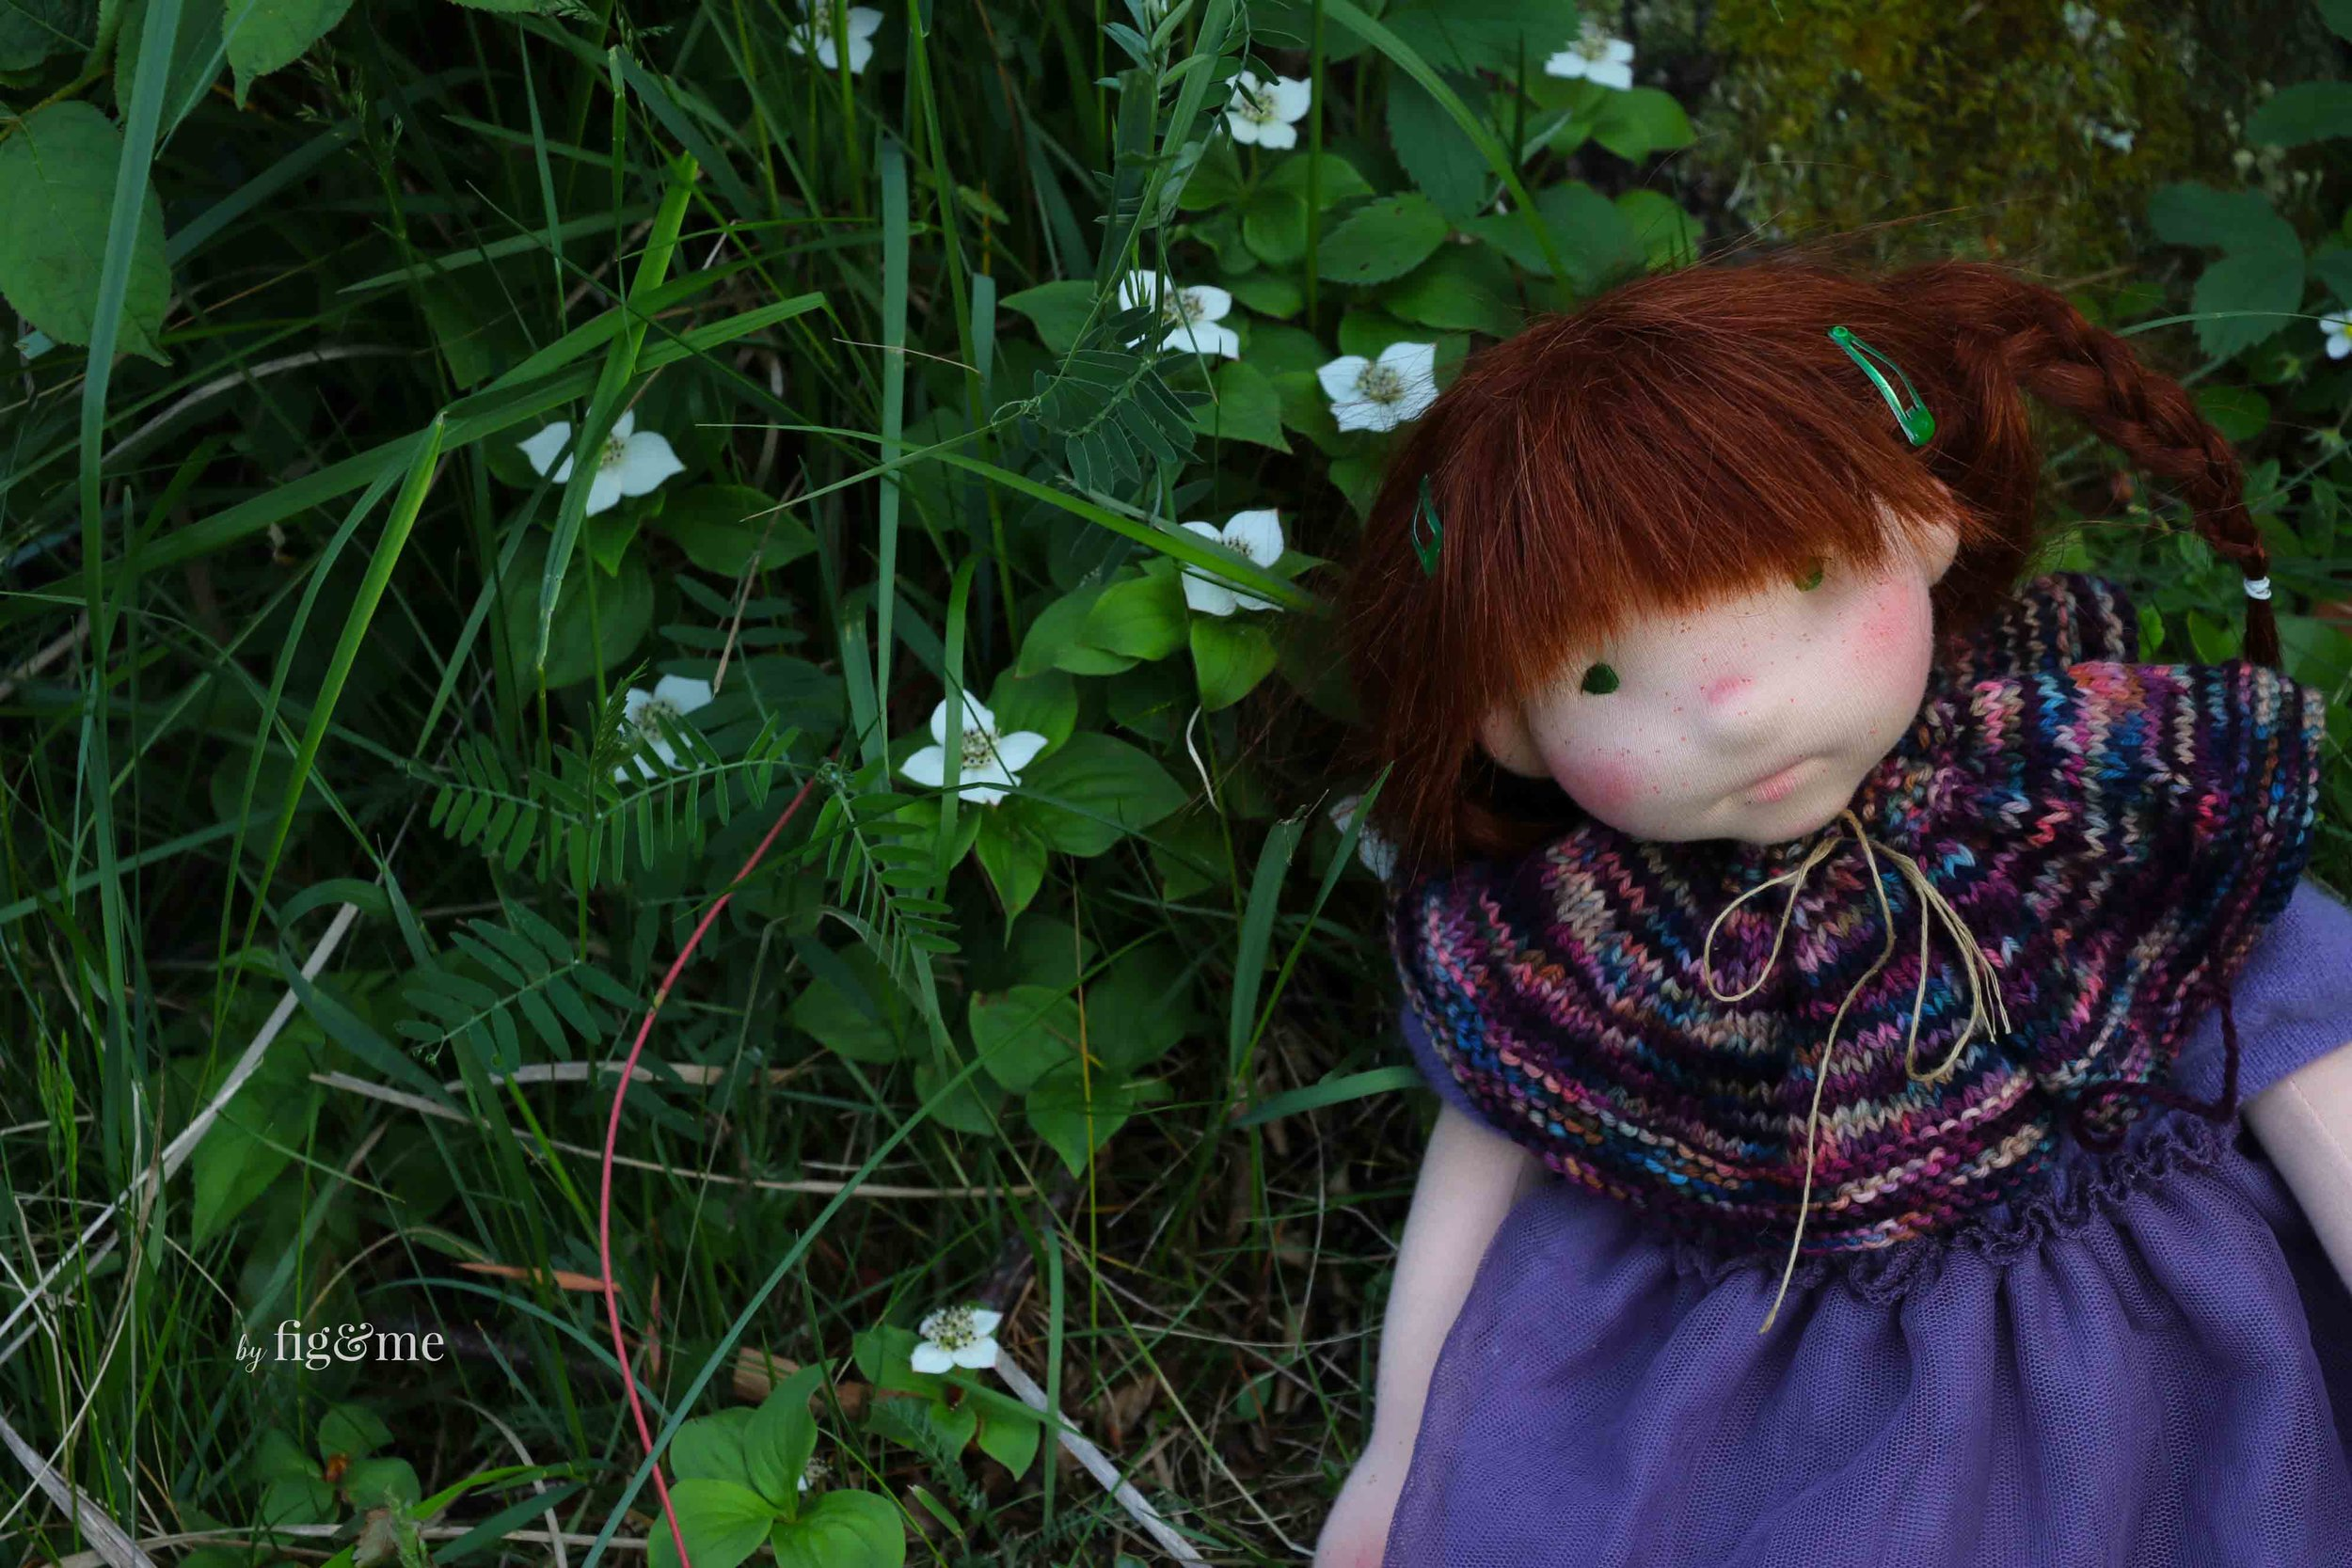 Bernadette in the garden, by fig and me.